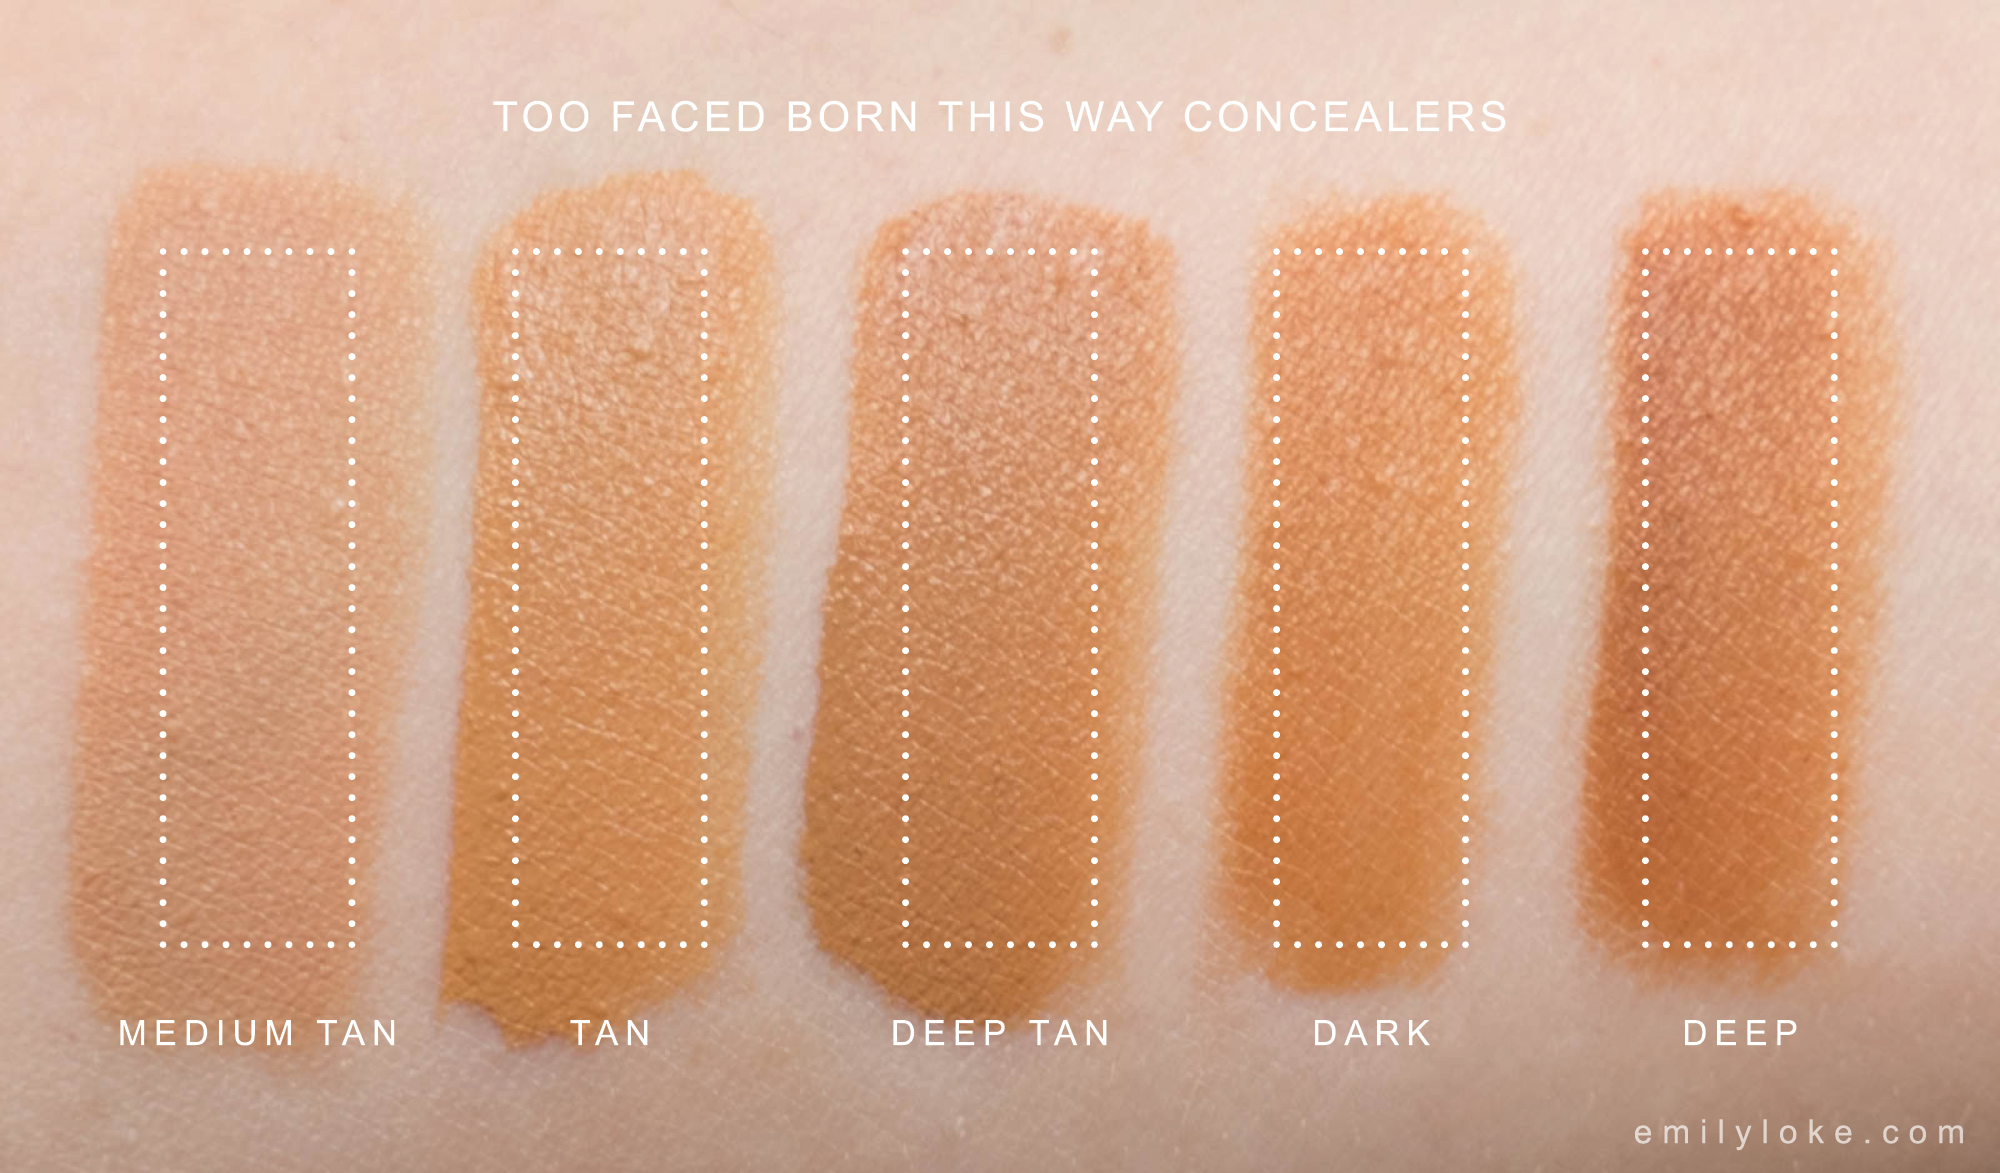 too faced born this way concealer swatches 02